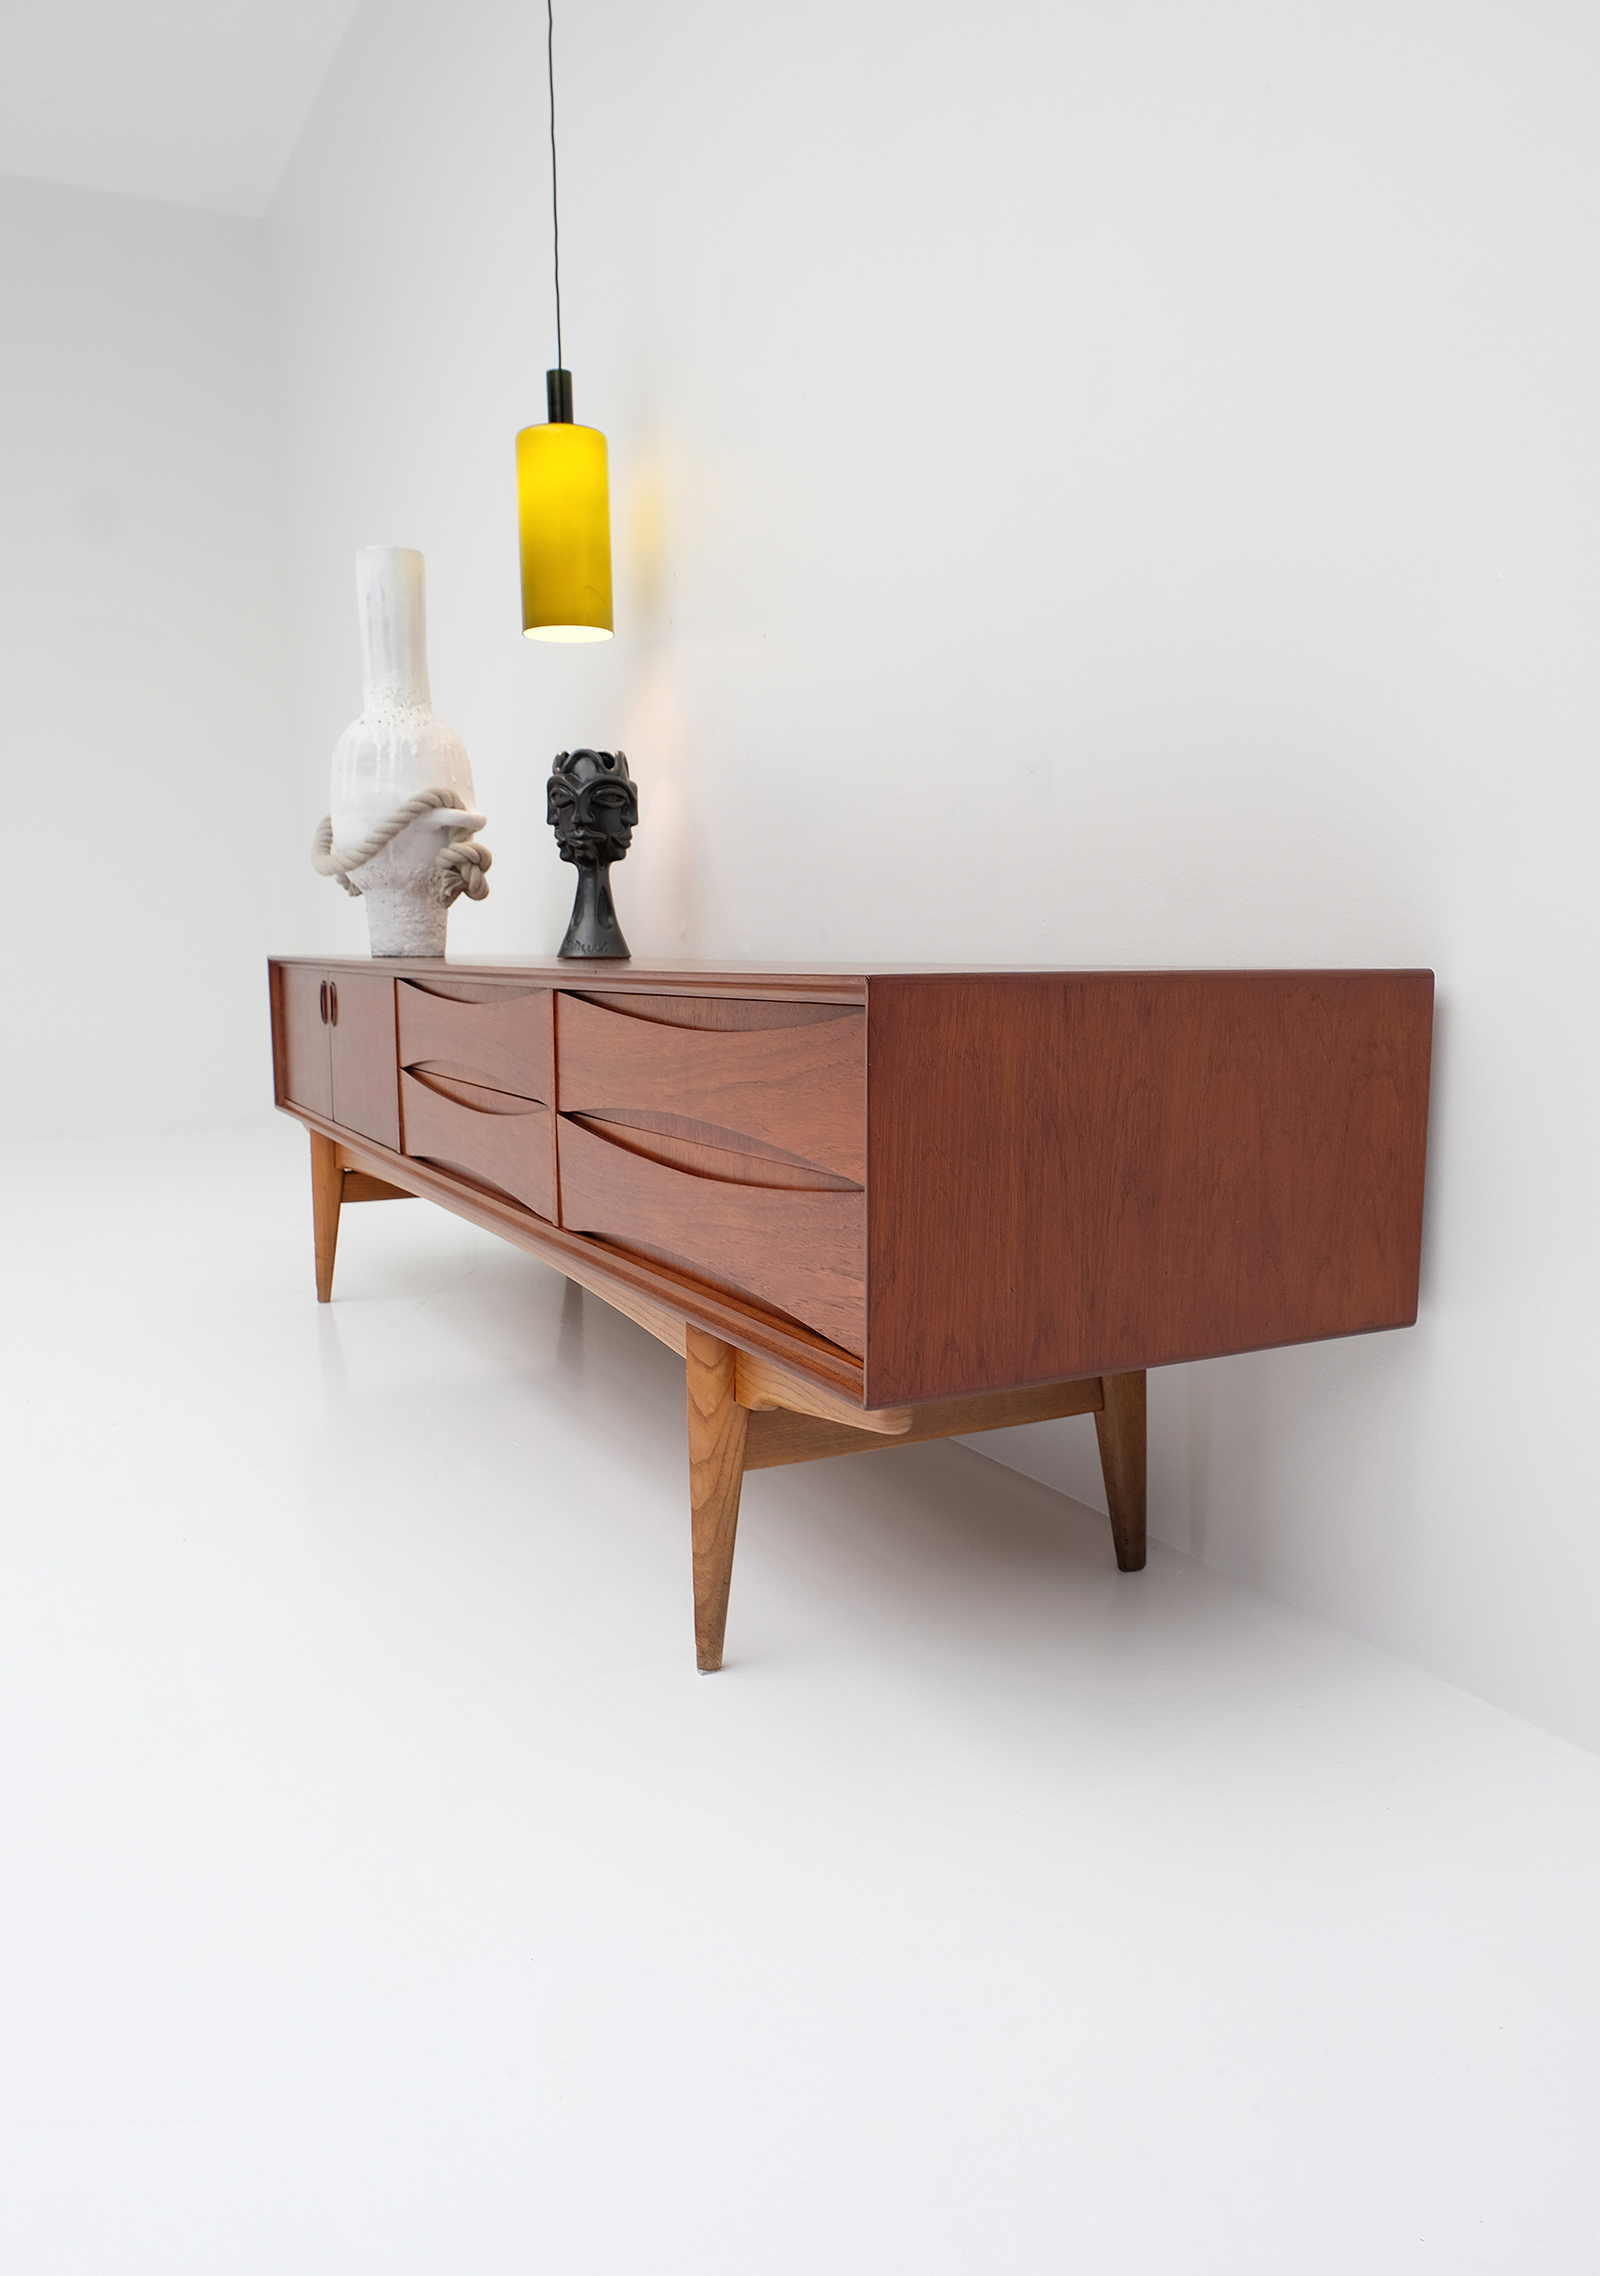 1958 V-form Paola Low Sideboard Oswald Vermaerckeimage 5